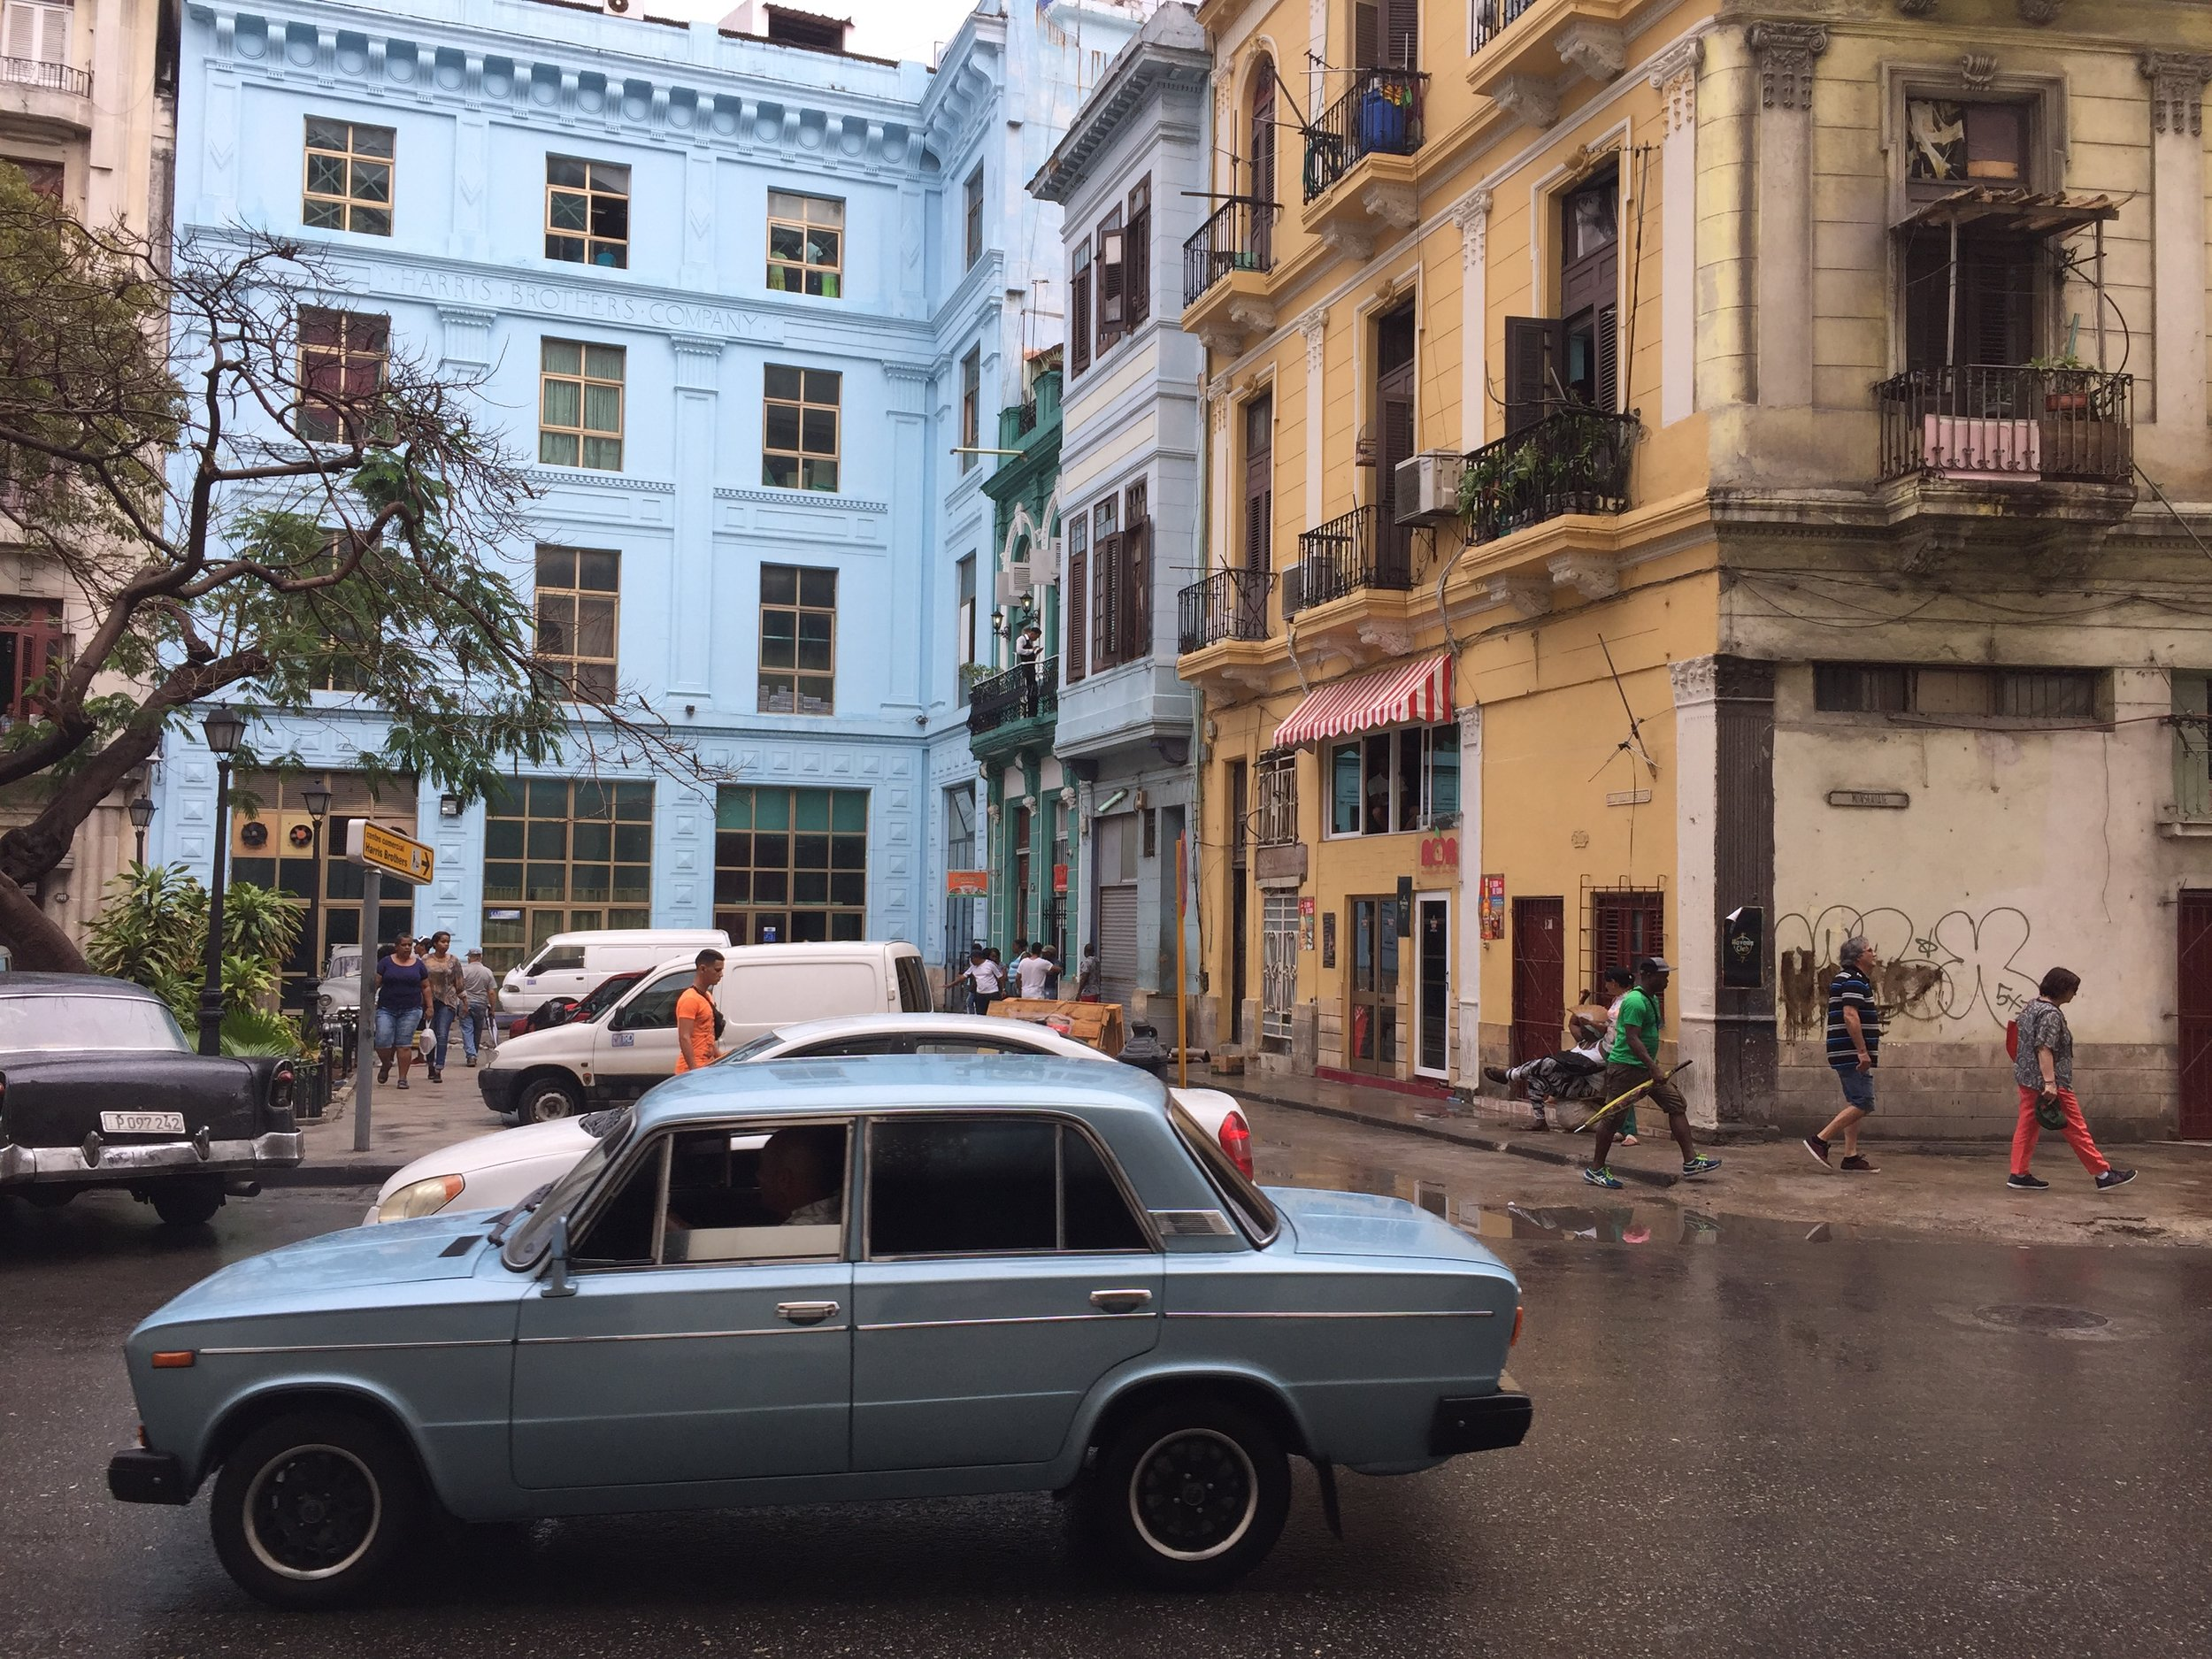 The rain never washes out the color in Old Havana.